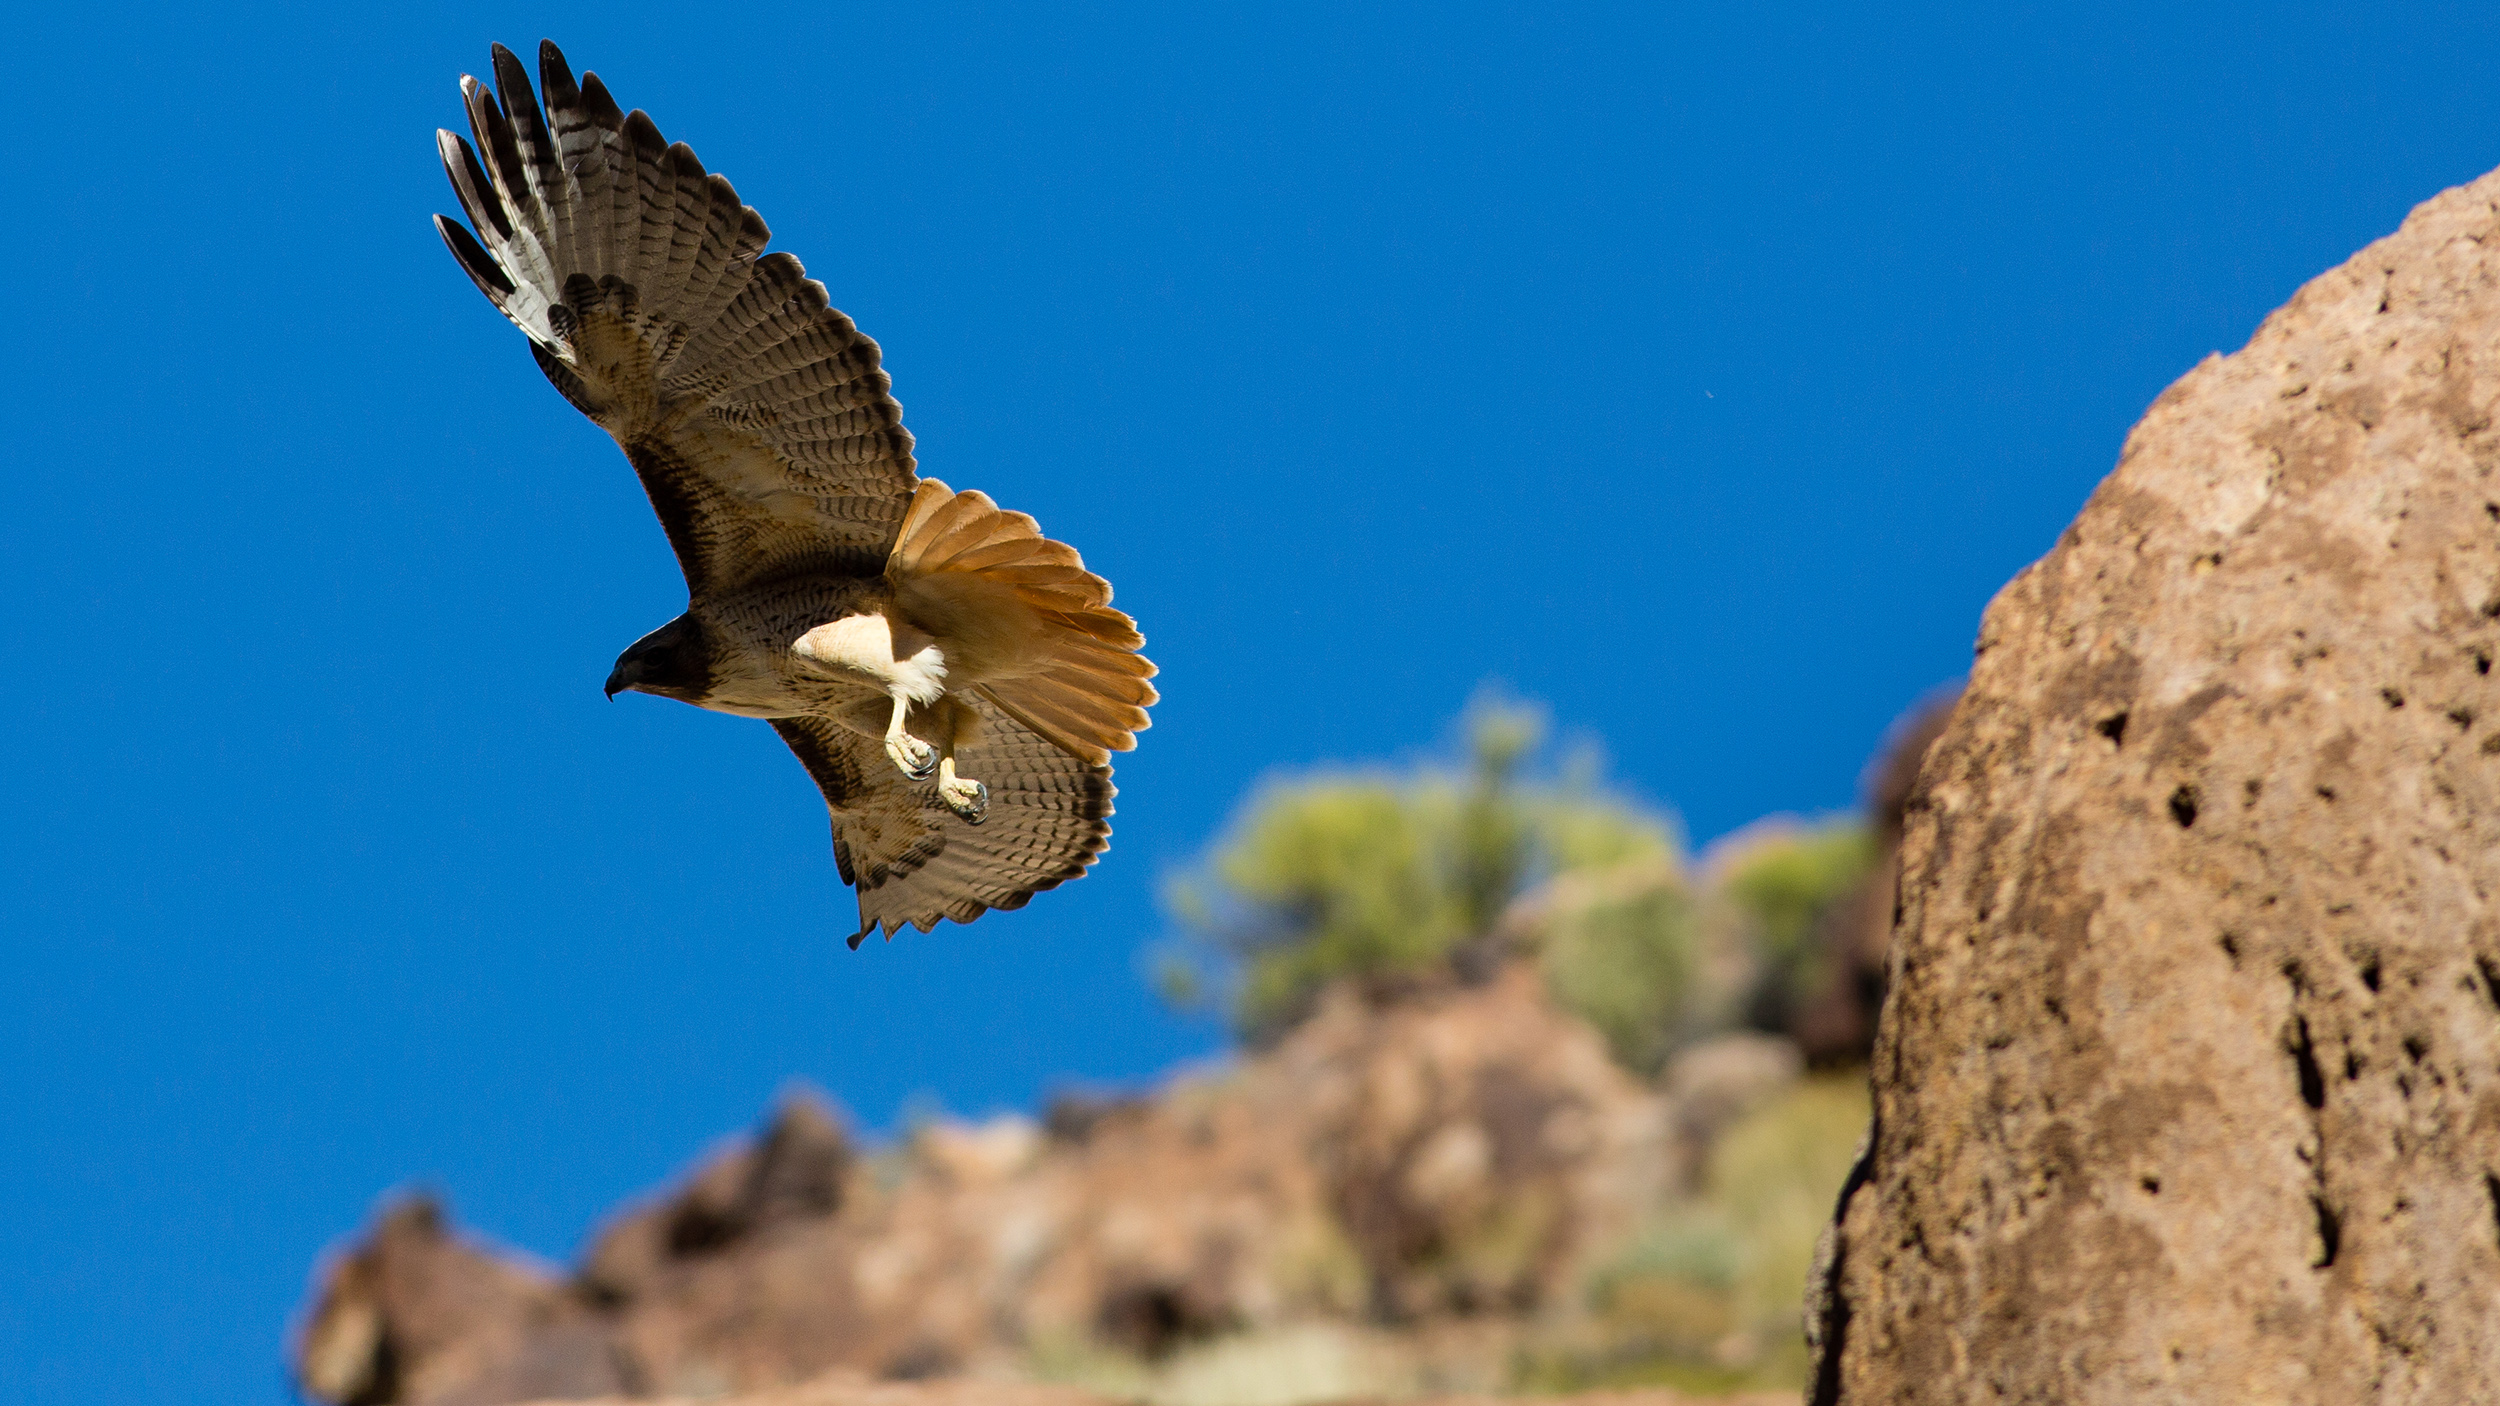 A red-tailed hawk takes flight over the Seaman Range.